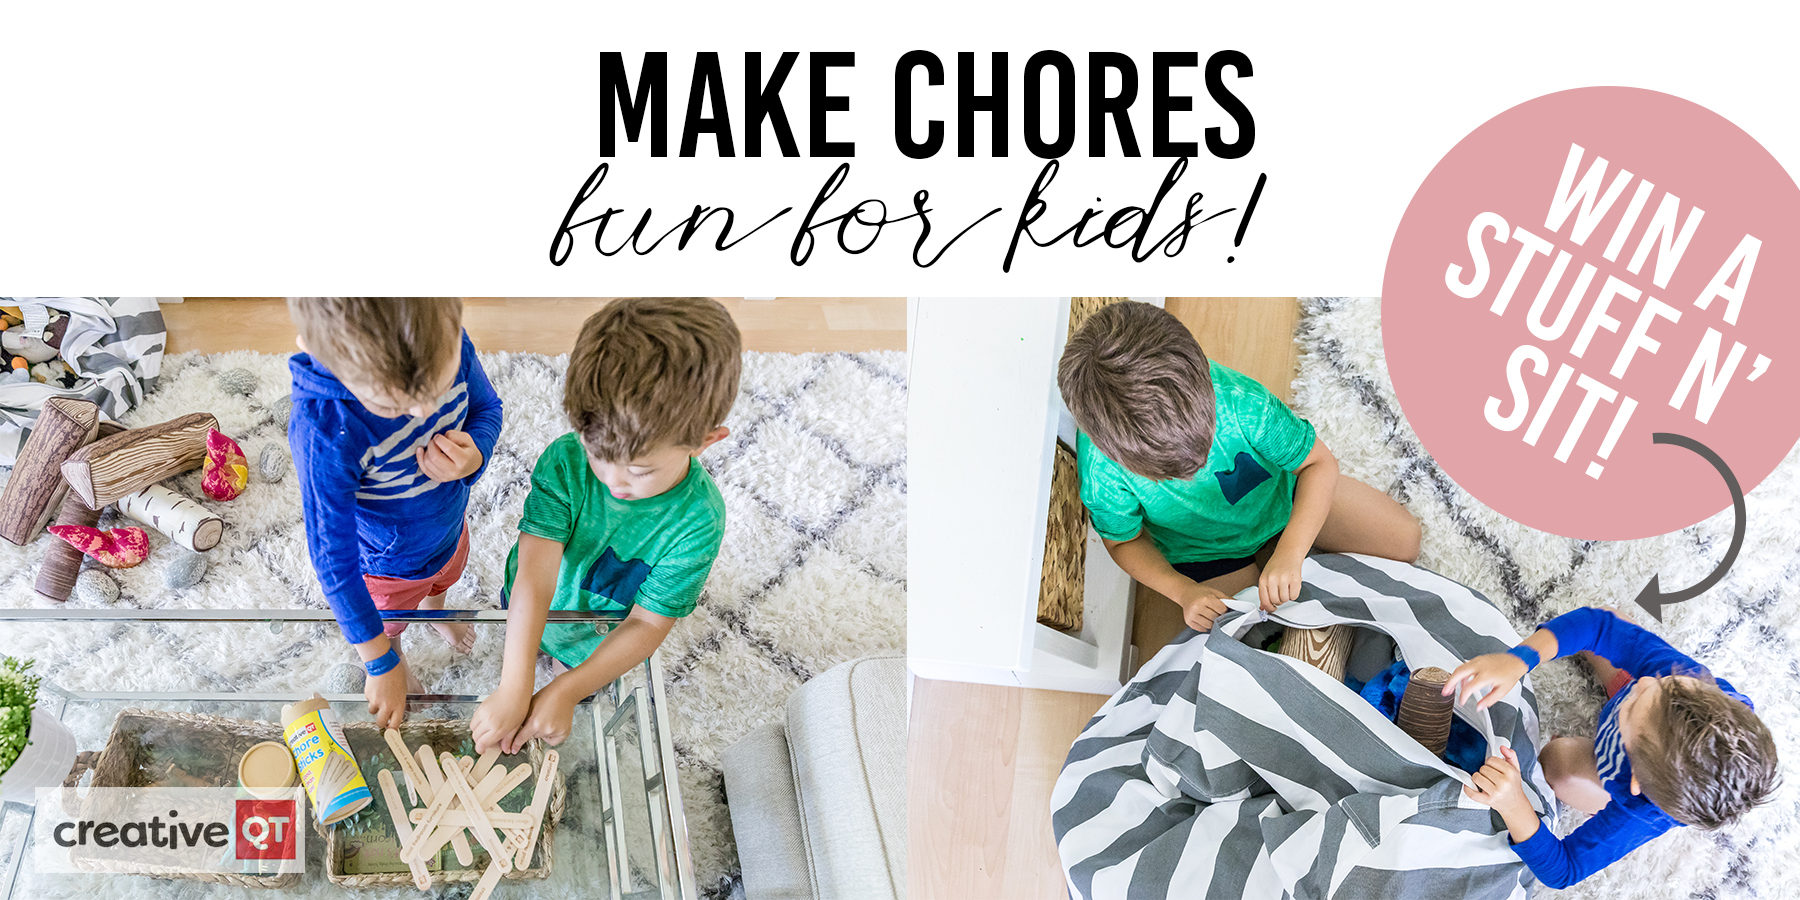 Make Chores FUN and NOT A BUMMER with Creative QT! | + WIN A STUFF N' SIT!!!